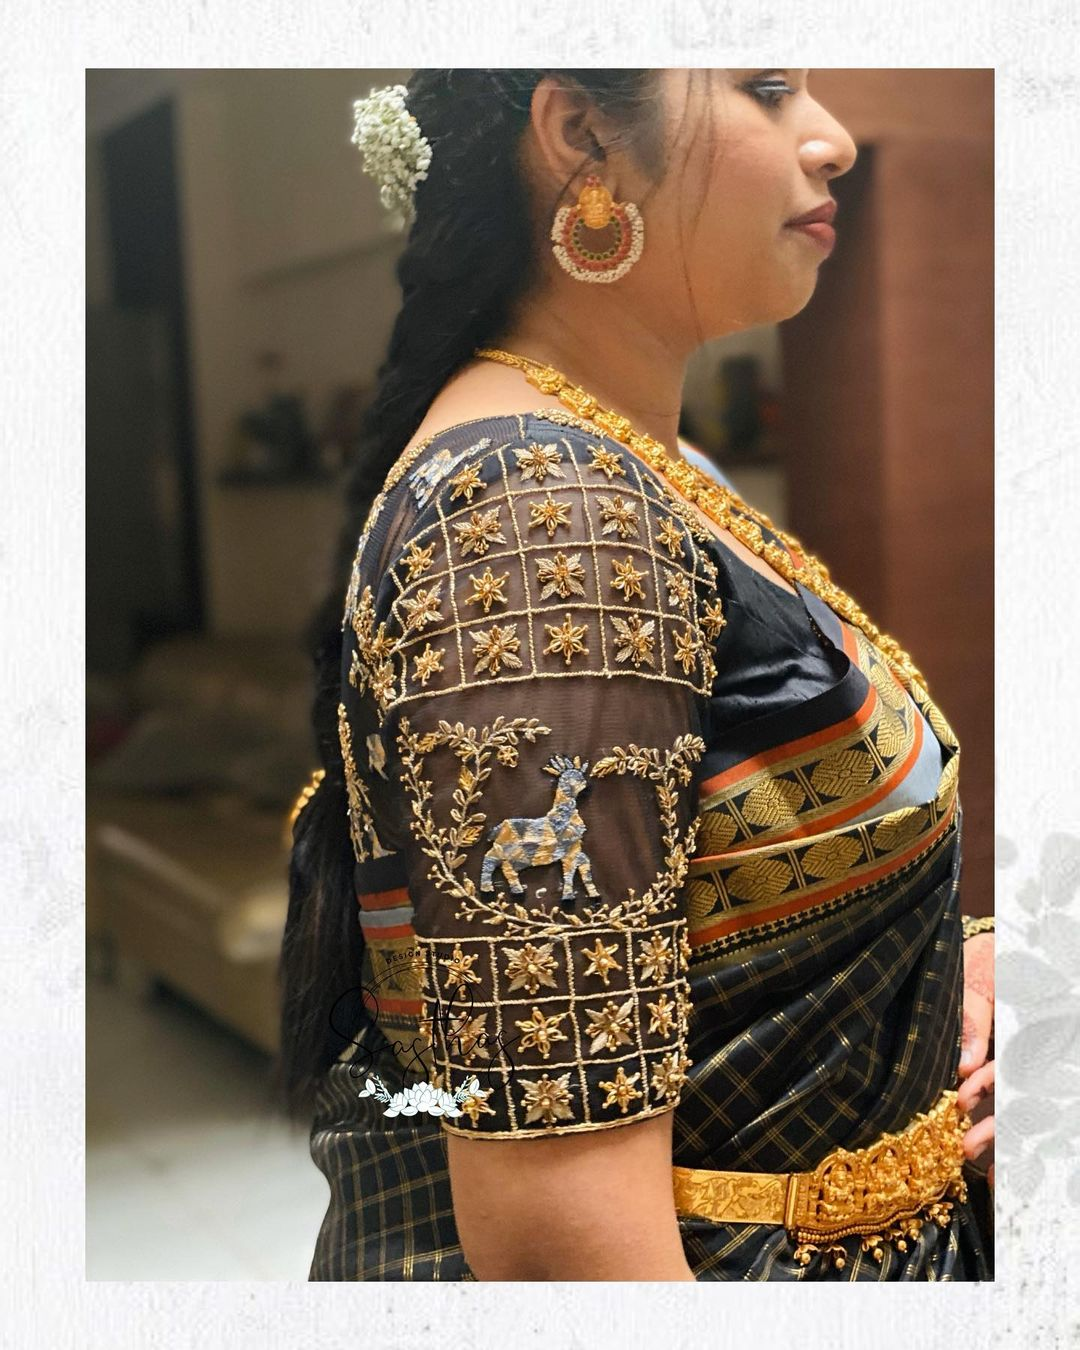 Stunning black color bridal blouse sheer sleeve with deer ahdne embroidery gold thread and stone maggam work.  2021-09-13